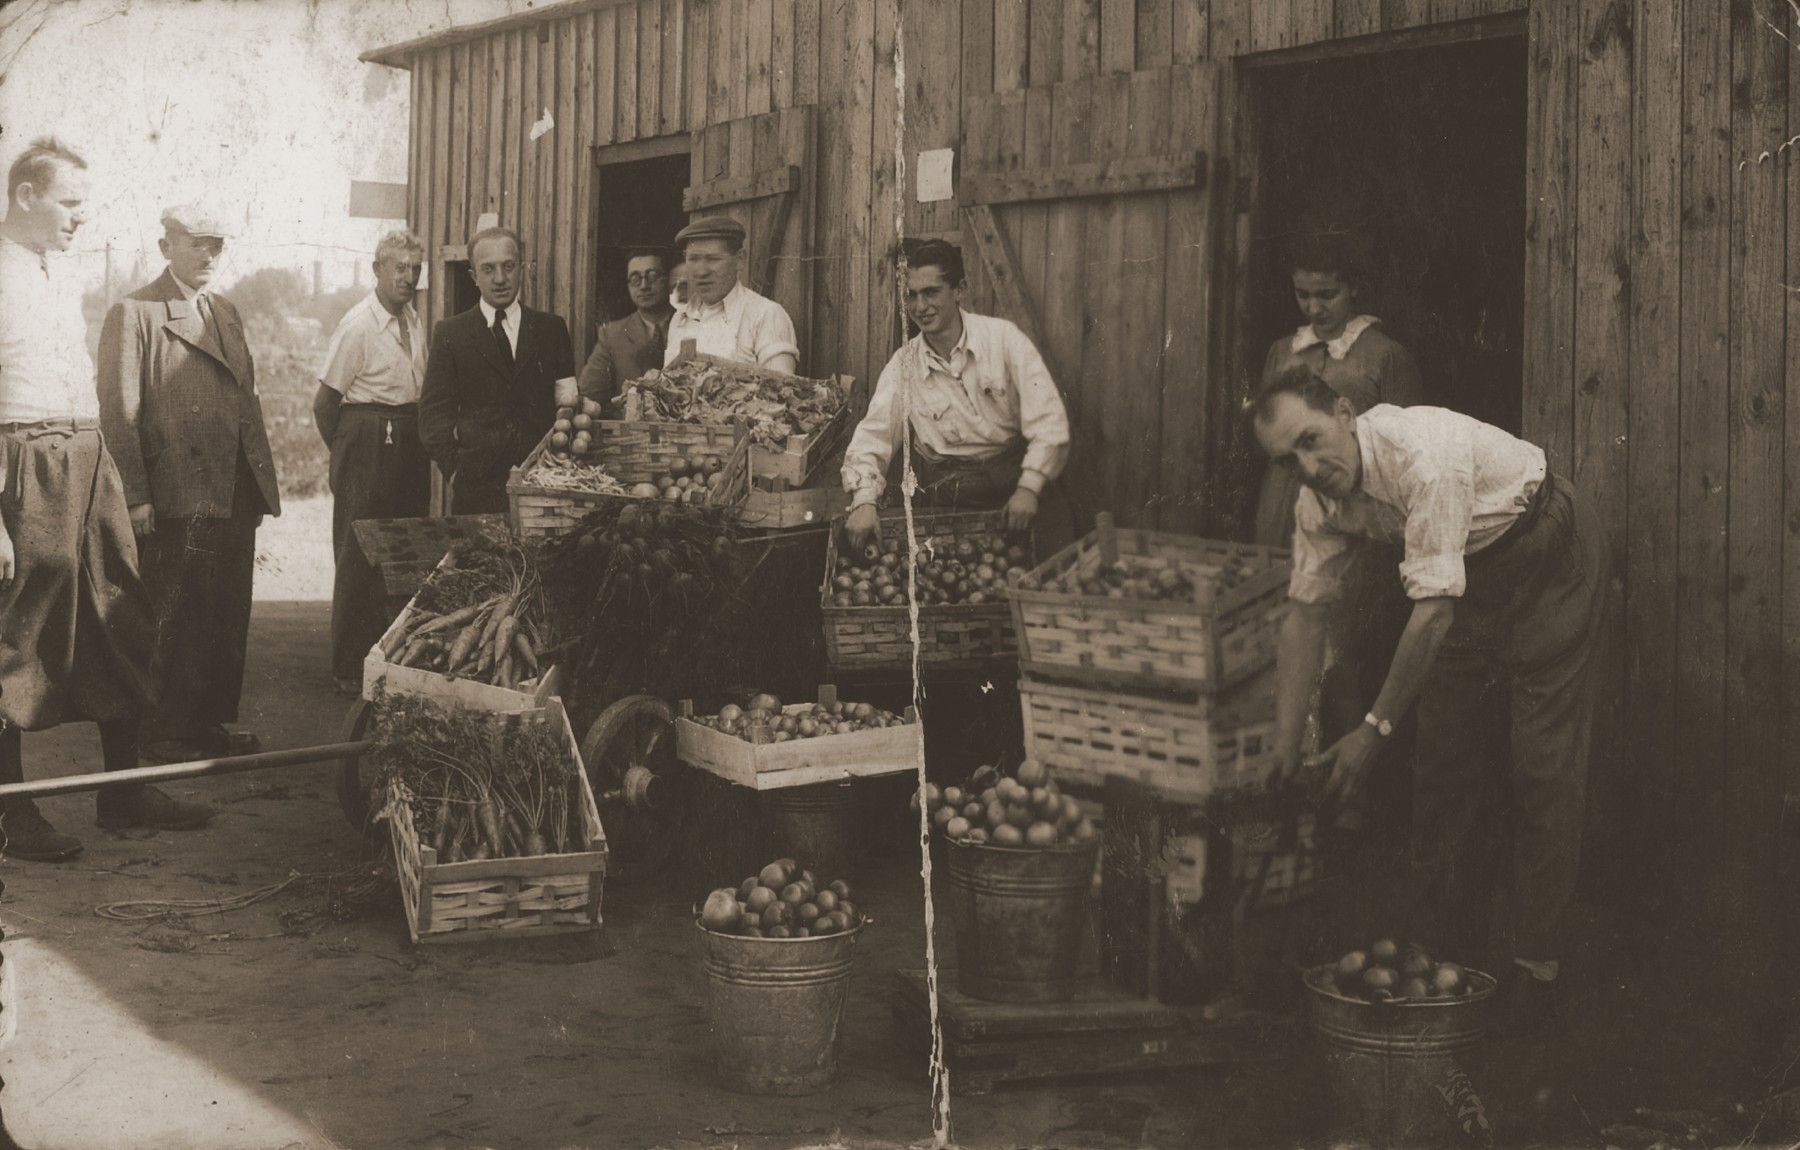 Jewish workers put out their produce in boxes and pails in front of a wooden shed.